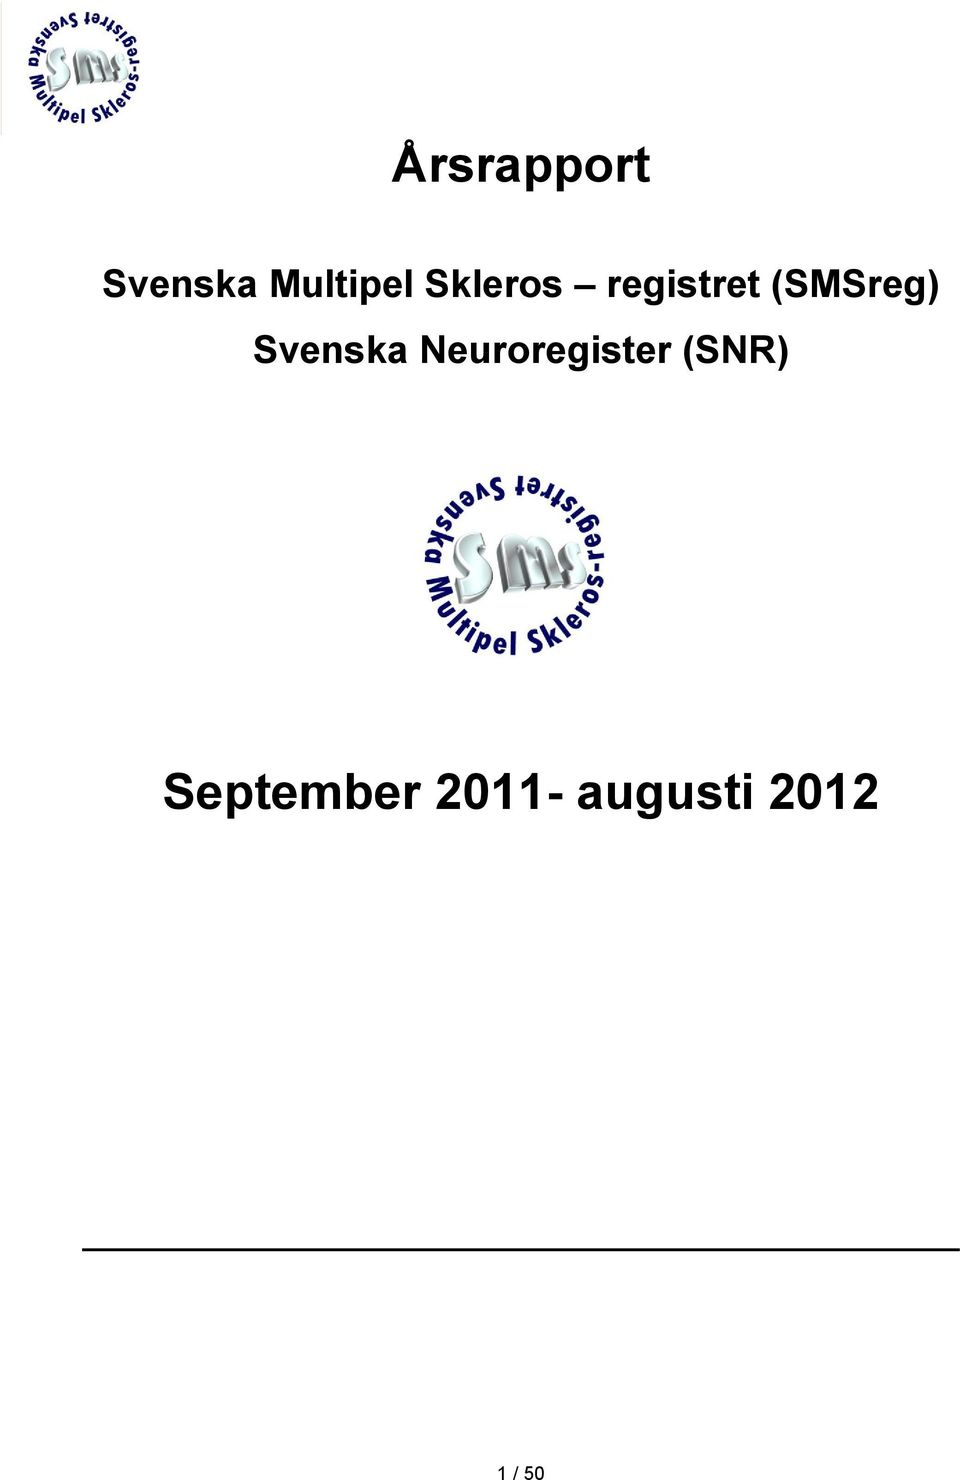 Svenska Neuroregister (SNR)